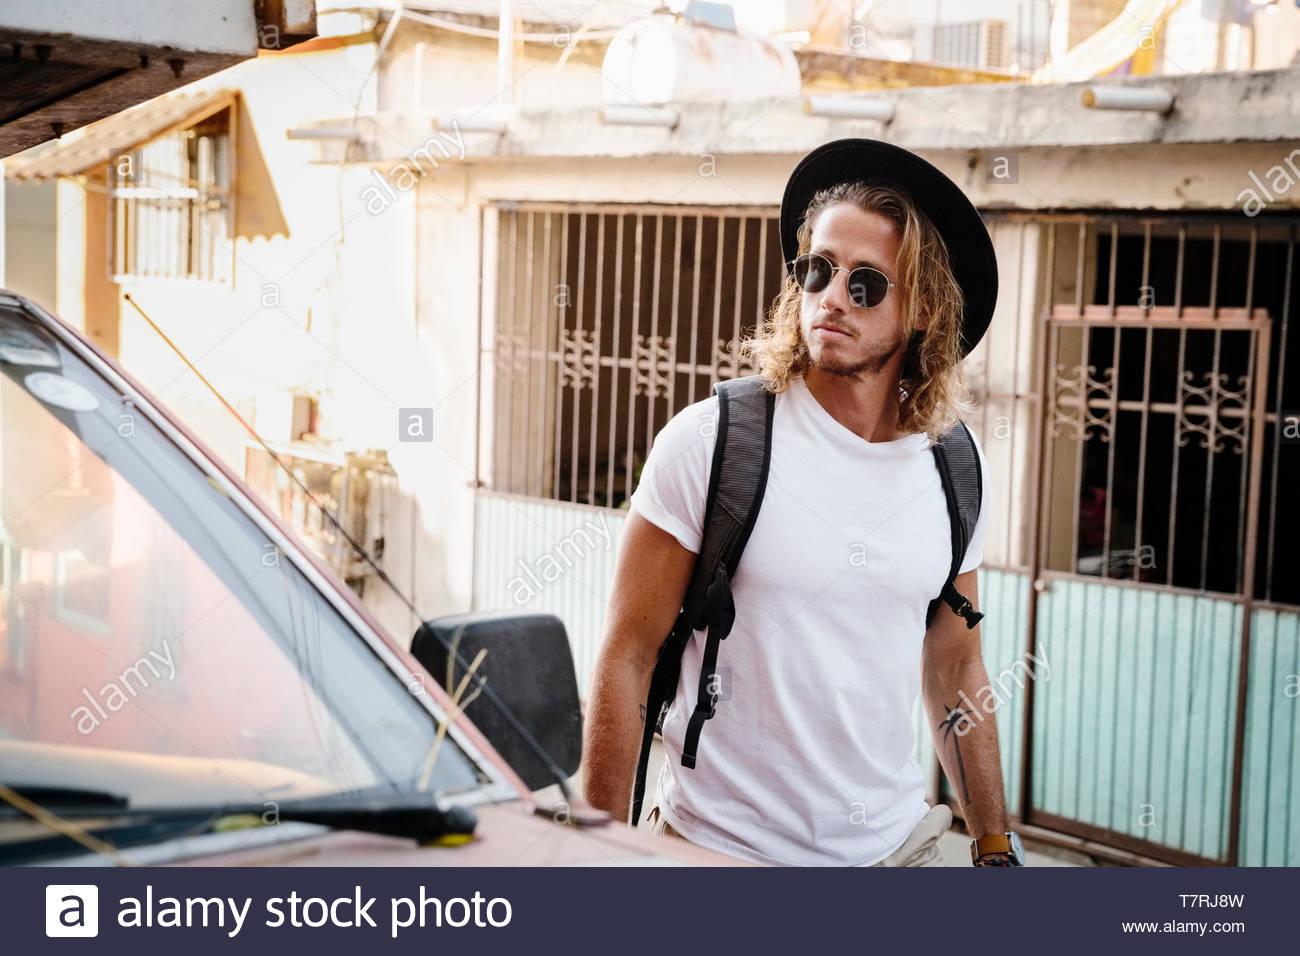 Young man walking on street, Mexico - Stock Image